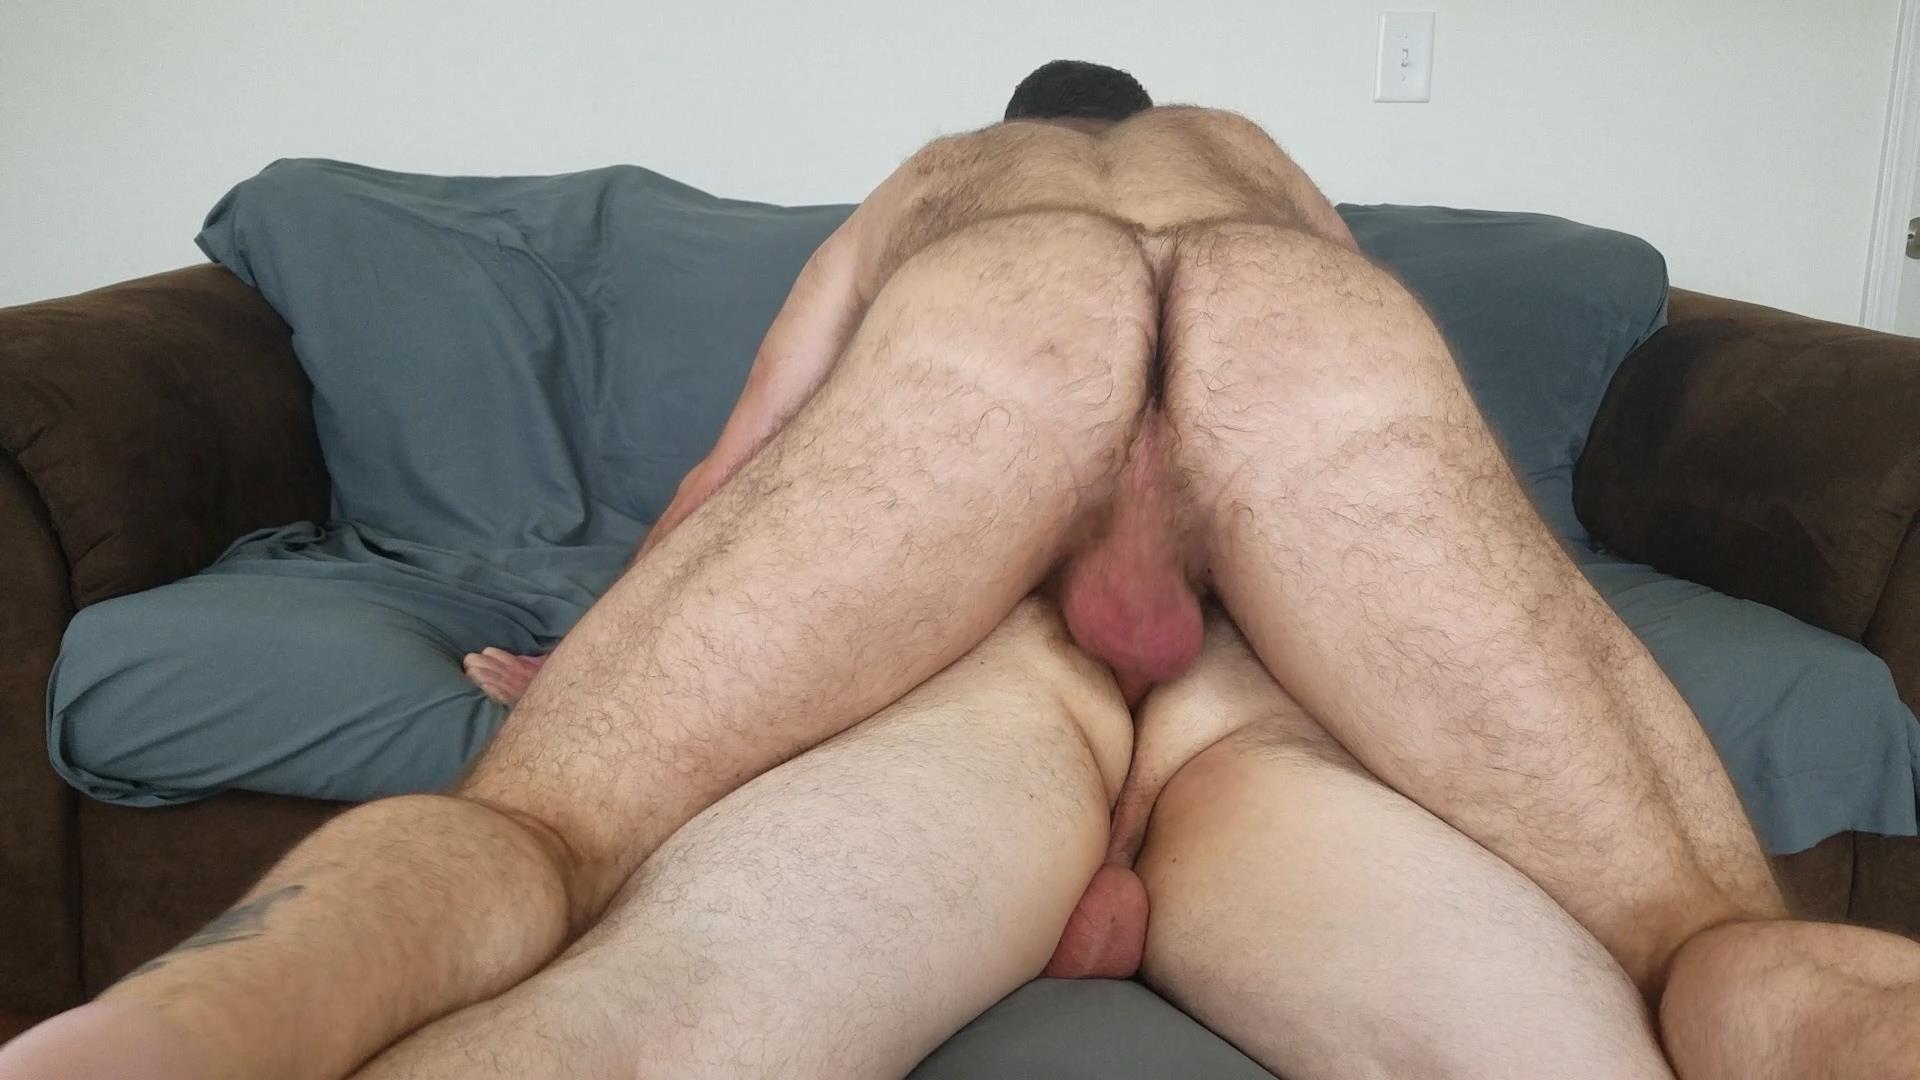 Topher-Phoenix-and-MuscleBul-and-David-Coyote-Daddies-Breeding-A-Chubby-Cub-23 Topher Phoenix and MuscleBull Take Turns Breeding Chubby Cub David Coyote